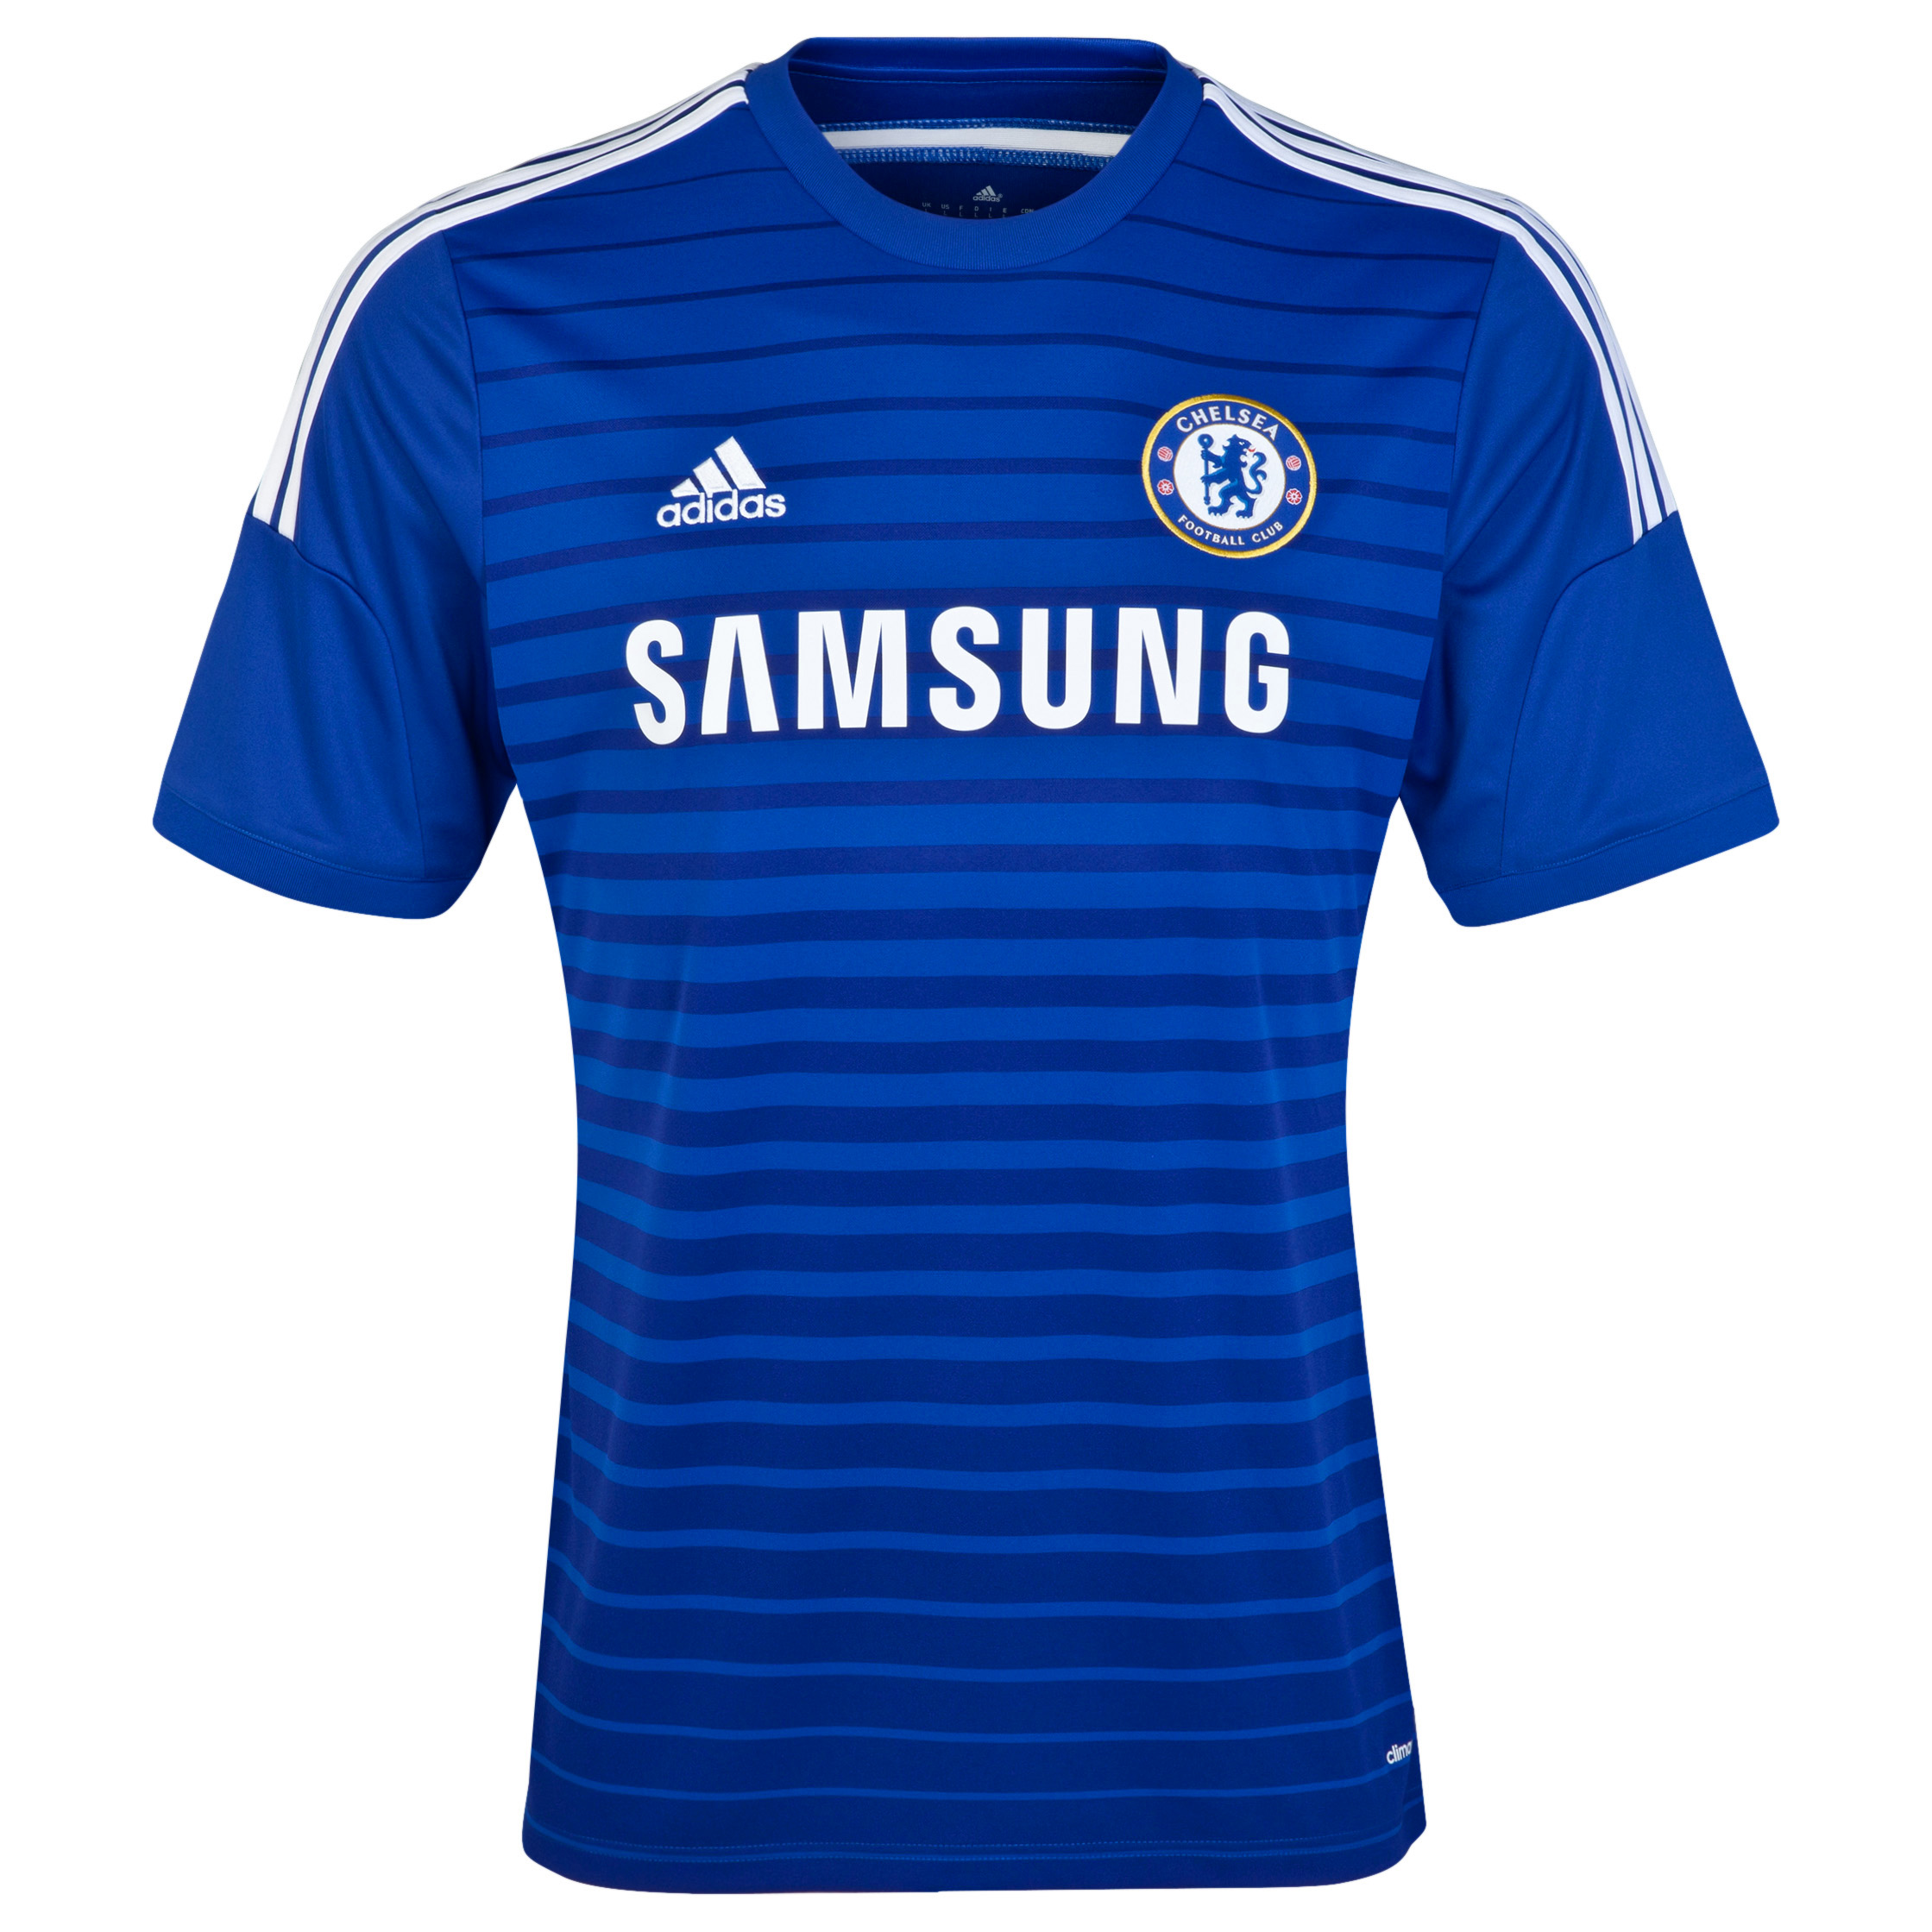 "Chelsea Home Kids Shirt 2014/15 Blue   A replica of the home team kit, this 2014/15 adidas Kid's Chelsea Home Shirt has Climacool® ventilation to help your child stay cool and dry as Chelsea lights up the pitch.   The colour design ""True Blue"" takes its inspiration from the club kits from the late 1980s and early 1990s. With an engineered fabric showing contrasting blue tones on the front panel and team crest on the left chest, young Chelsea fans can wear this home jersey with pride. Benefits of Chelsea home shirt •Ventilated Climacool® keeps you cool and dry. •Engineered fabric showing contrasting blue tones •Two toned stripe design"